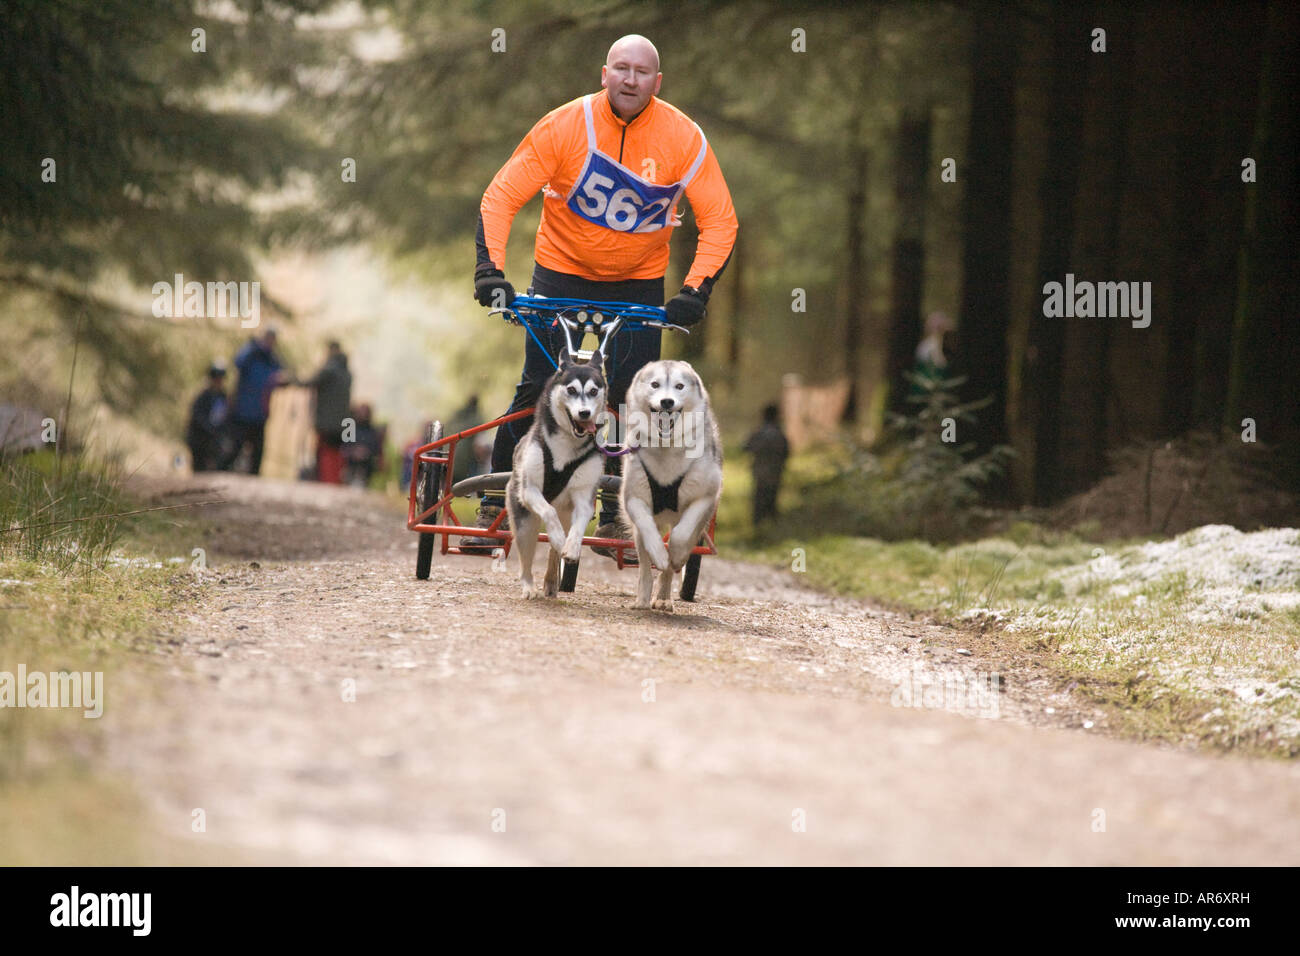 Dog Sport Scotland Husky Huskies sled dog racing in Ae Forest Dumfries and Galloway UK - Stock Image